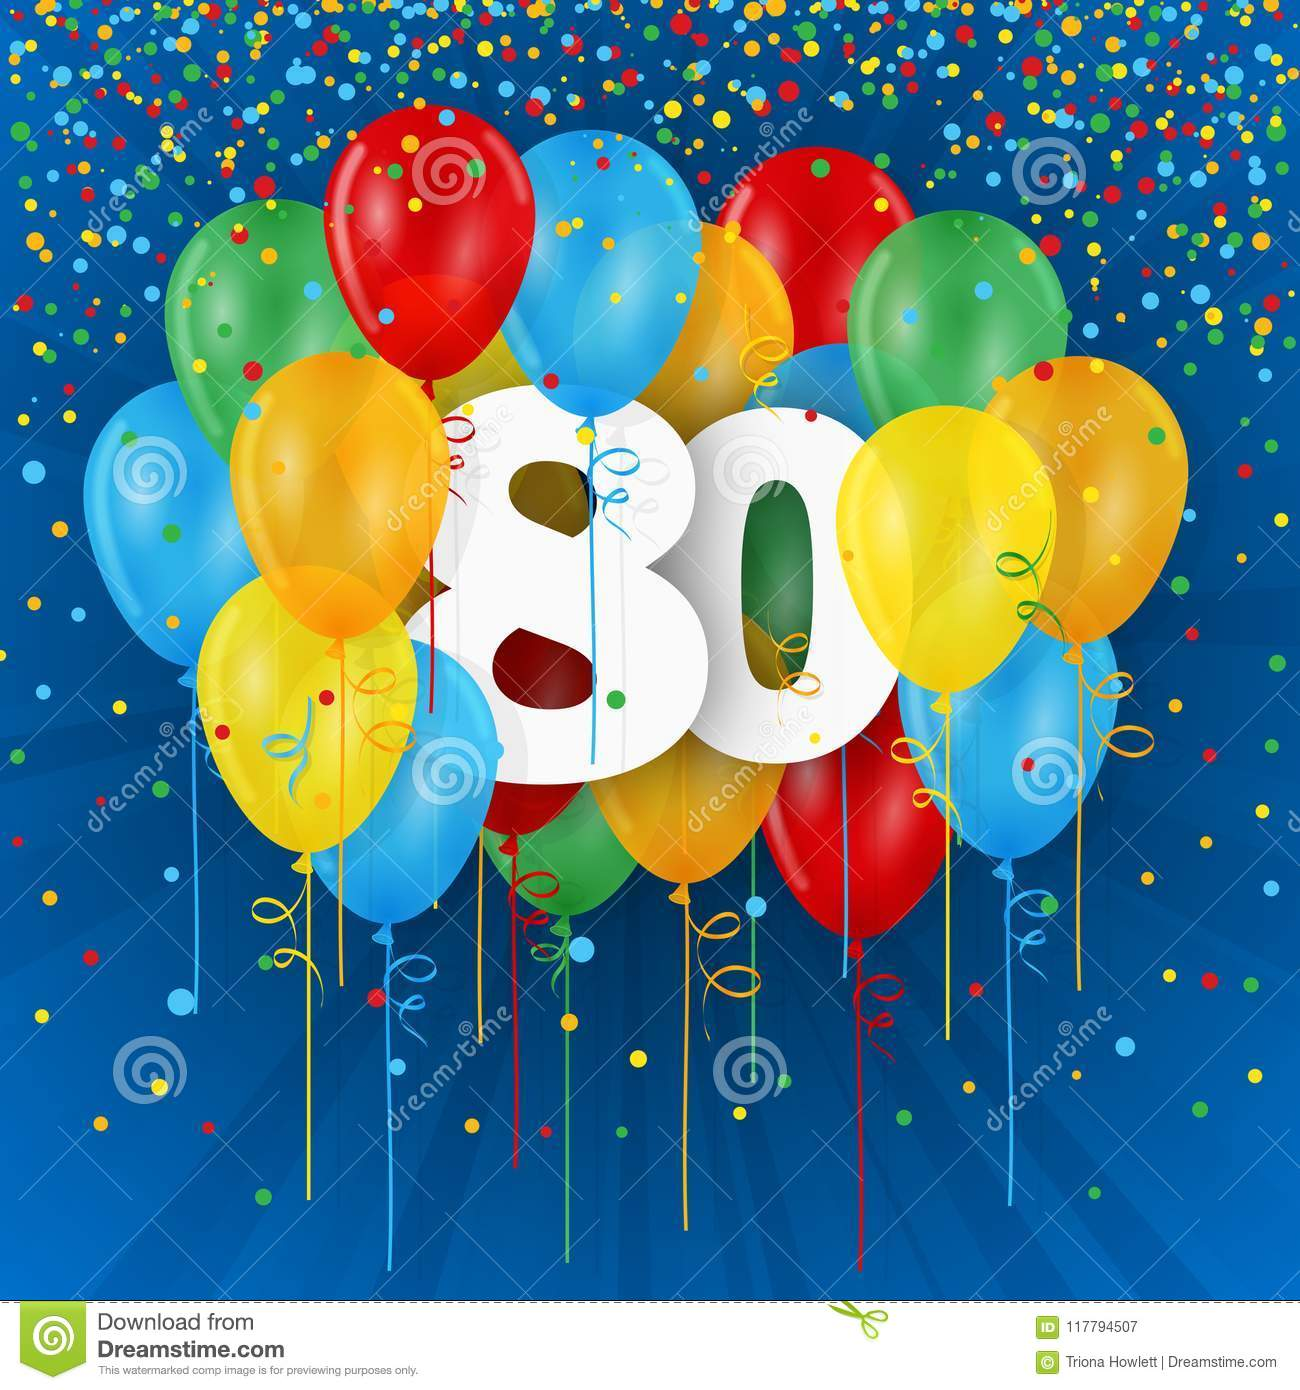 Happy 80th Birthday Anniversary Card With Balloons